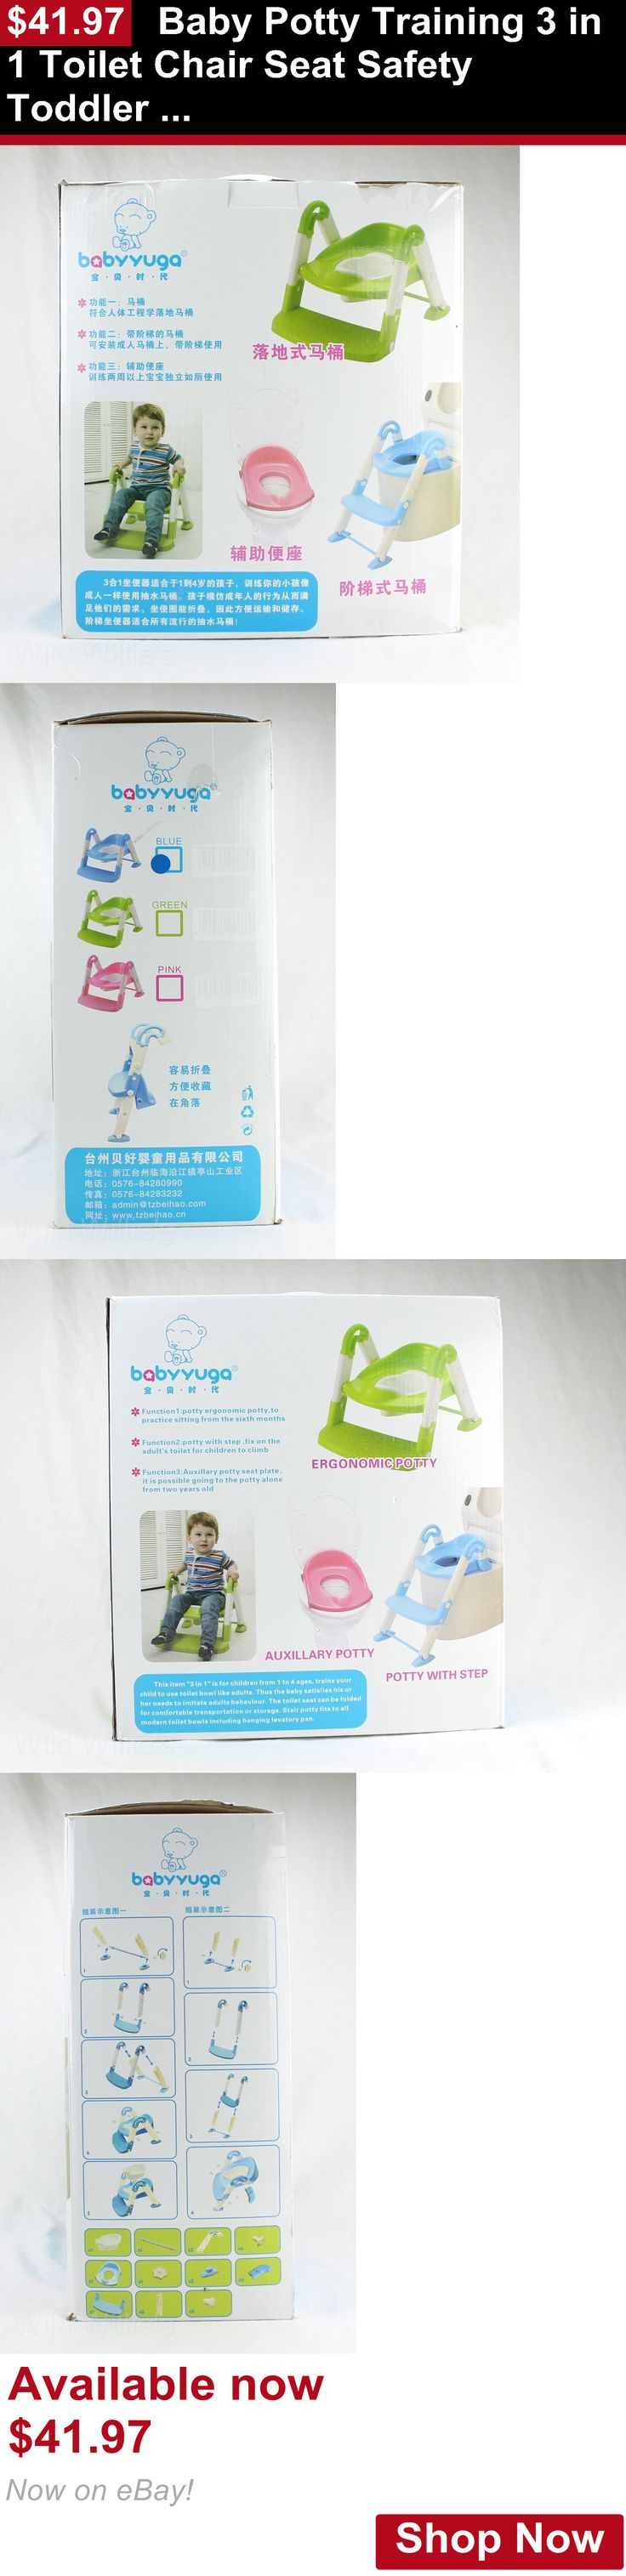 Potty Training: Baby Potty Training 3 In 1 Toilet Chair Seat Safety Toddler Step Ladder Trainer BUY IT NOW ONLY: $41.97